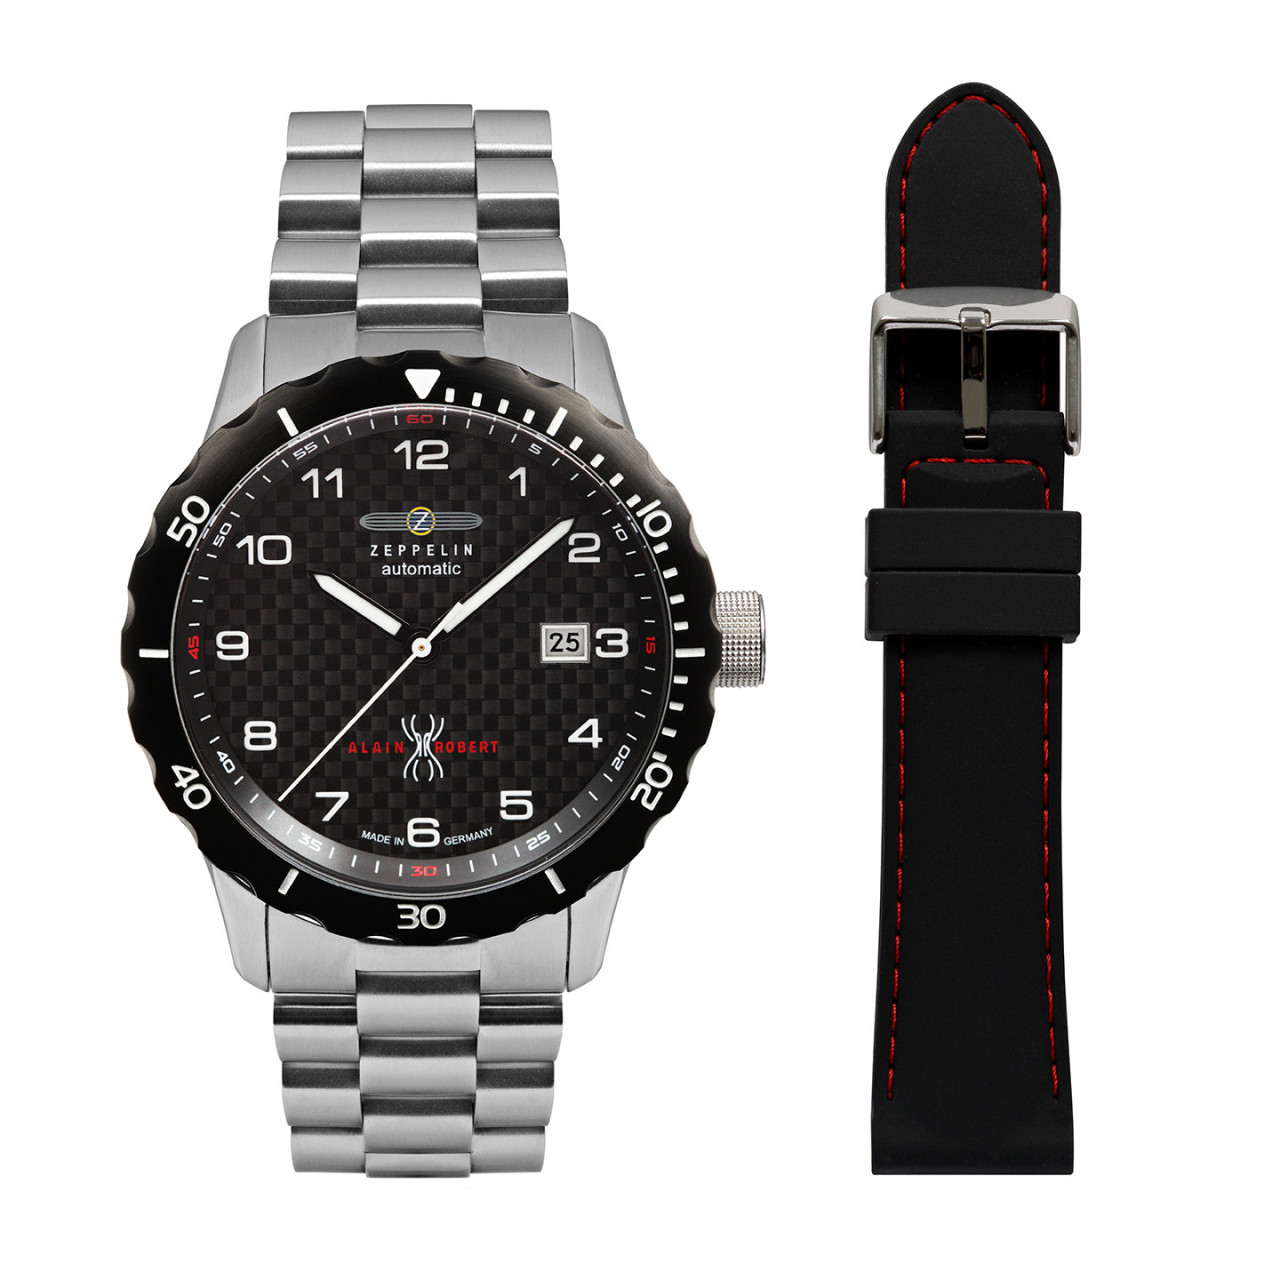 HAU, Zeppelin NightCruise Automatic Ed. AR SET Kal. 9015 24 Jewels, Steelcase Diver wr 20atm